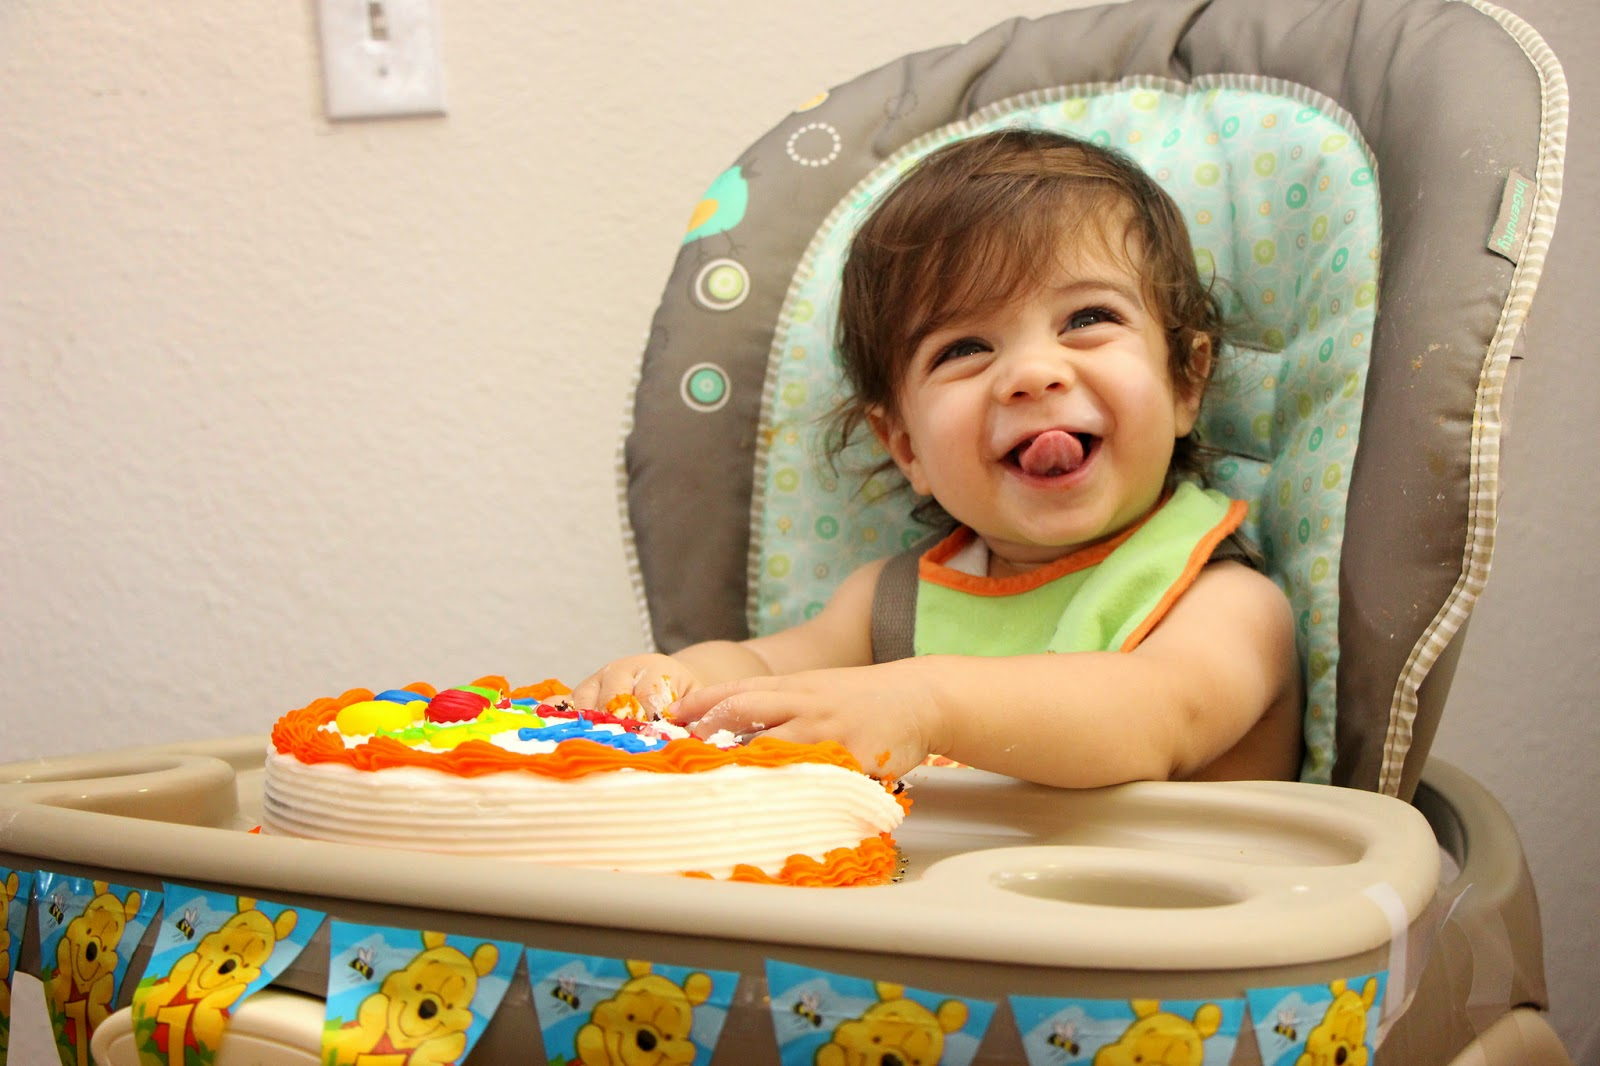 My son enjoying his 1st birthday cake